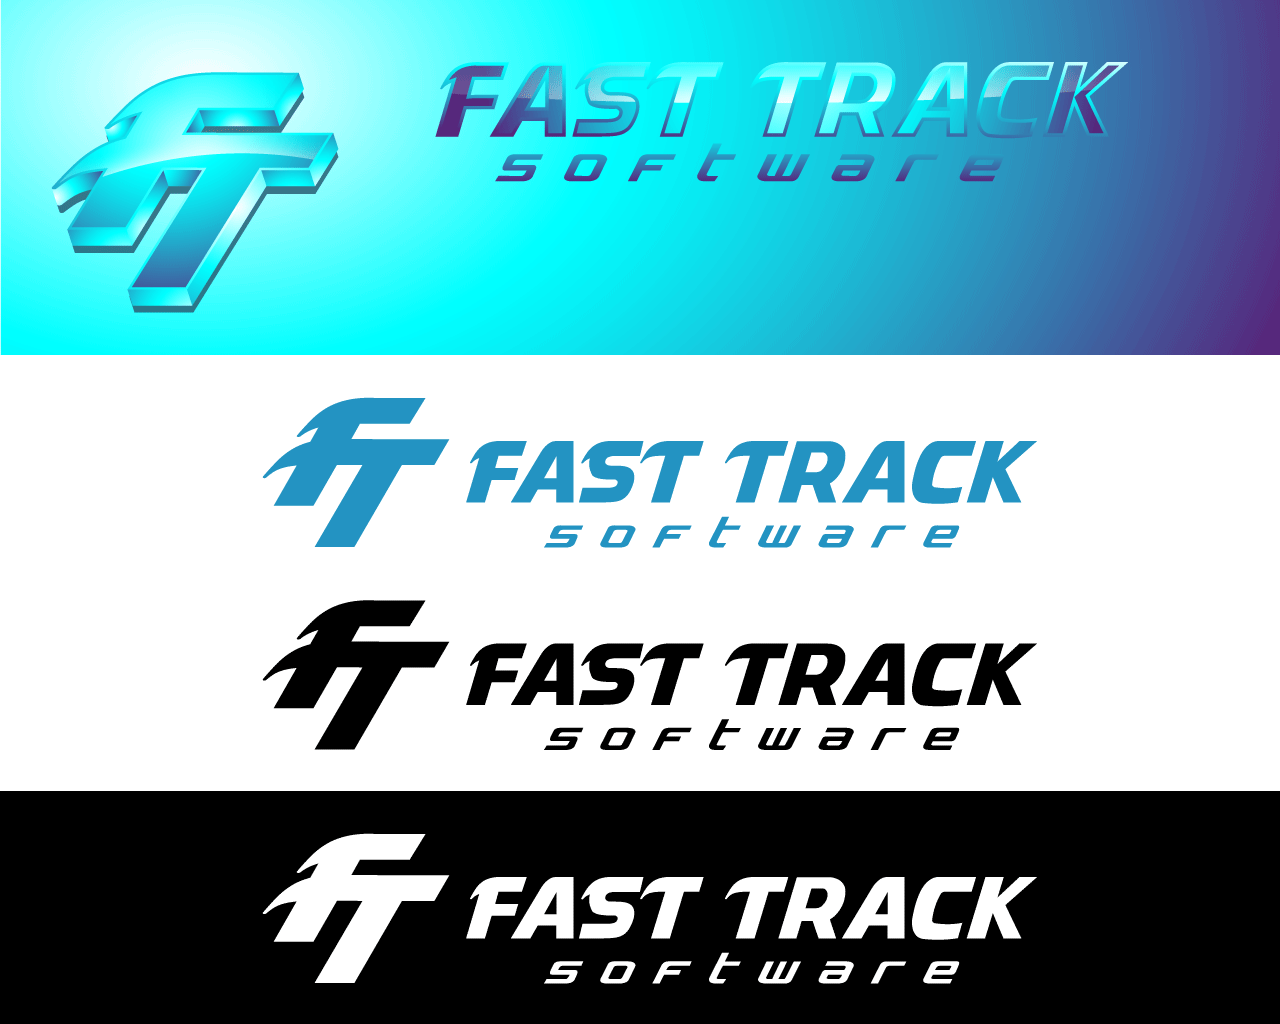 Logo Design by Omar Martinez - Entry No. 12 in the Logo Design Contest Fast Trak Software Logo Design.